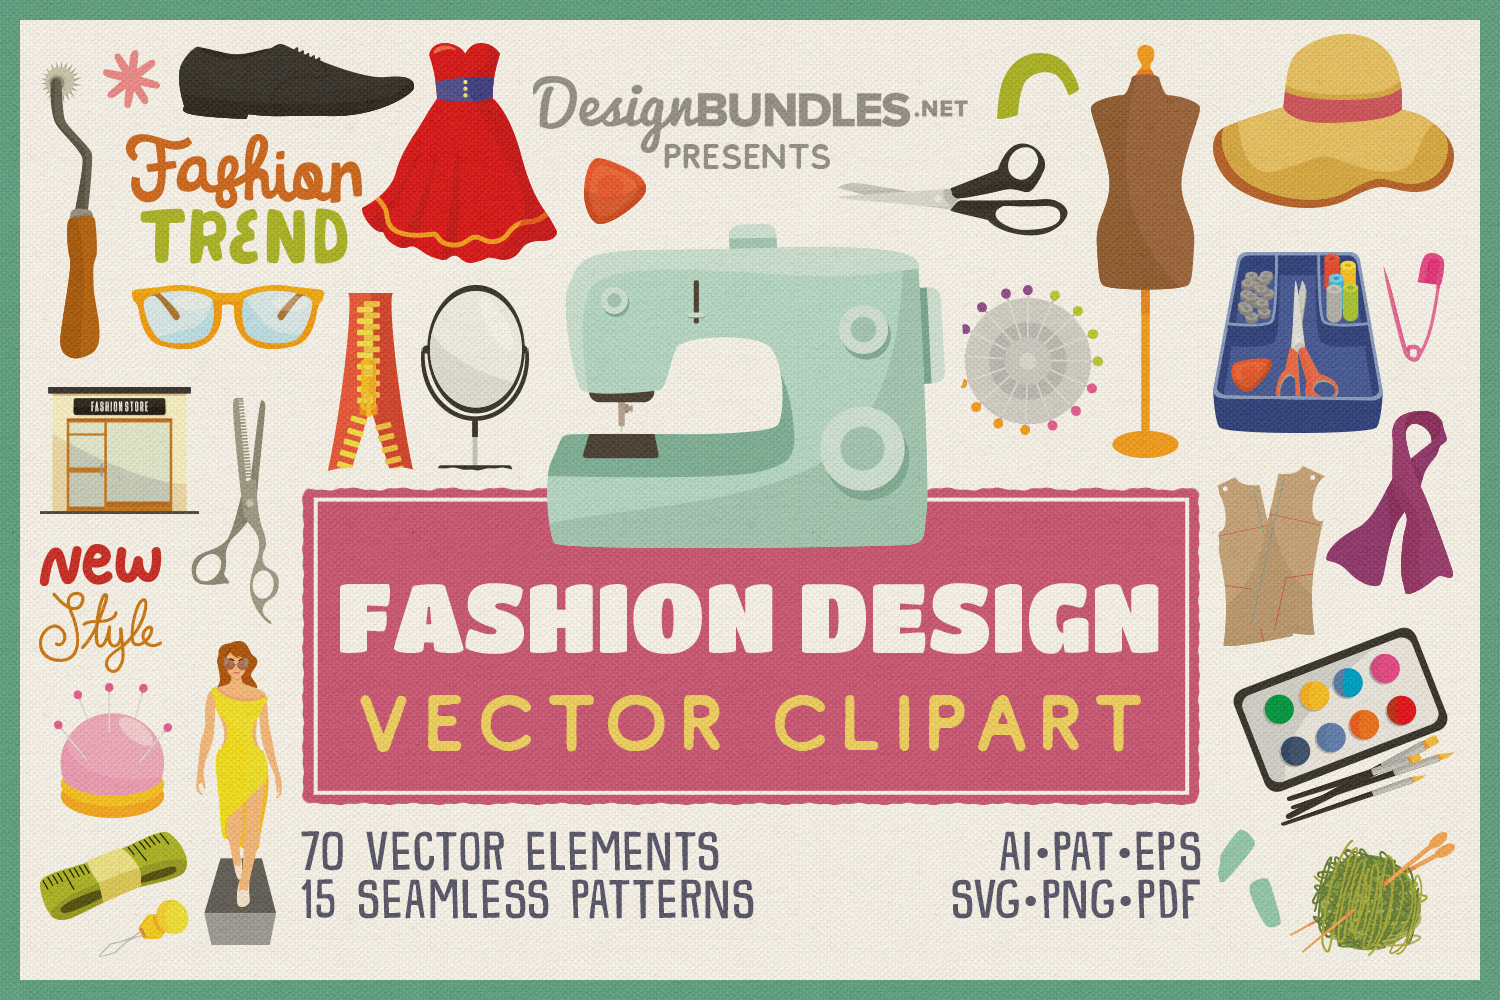 Fashion Design Vector Clipart And Seamless Pattern